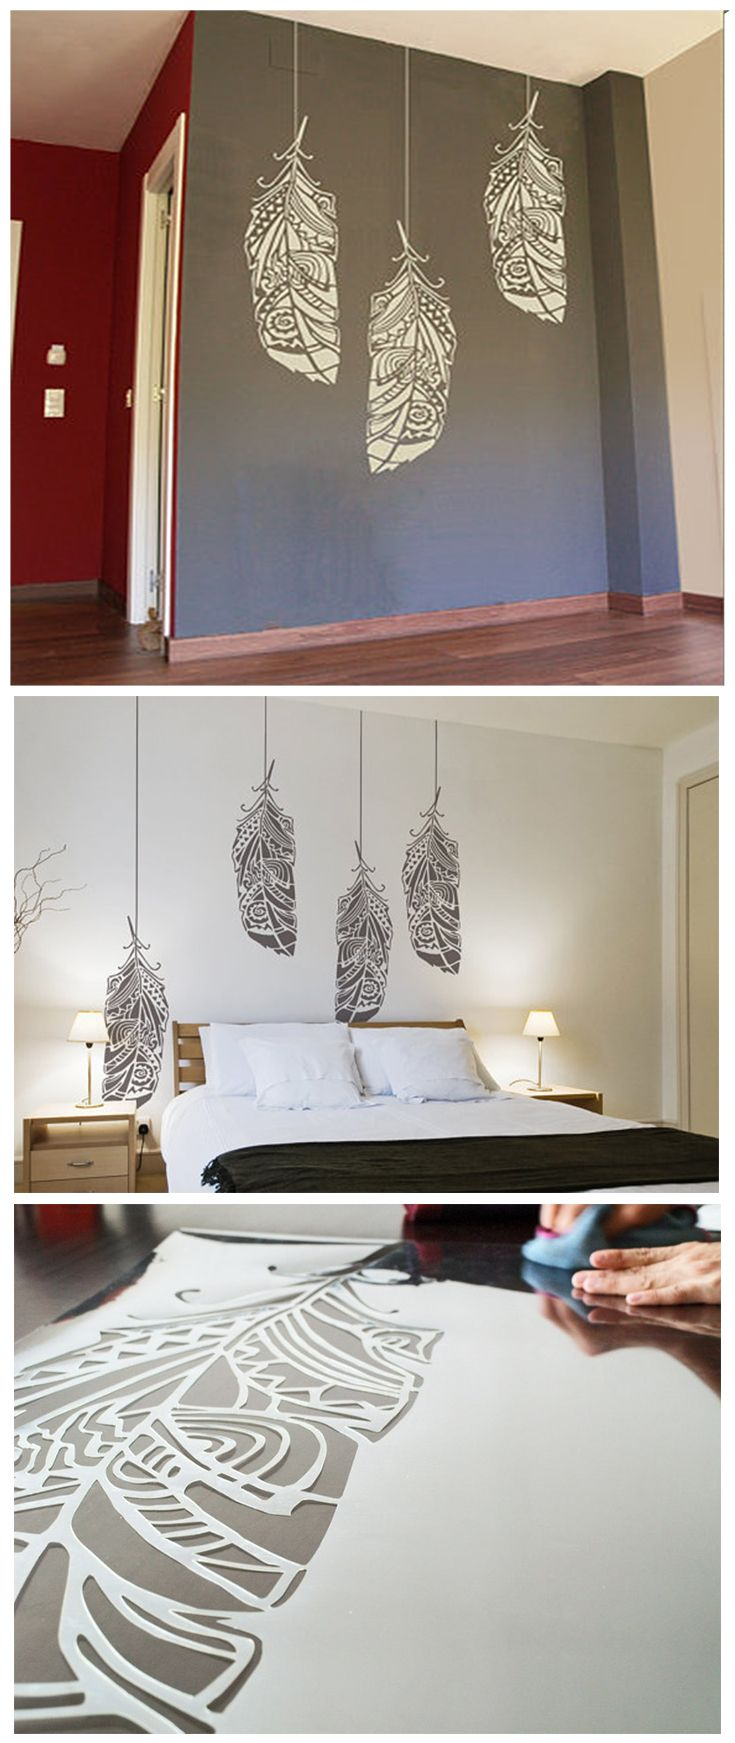 Painting walls ideas wall decals - Feather Stencil Ethnic Decor Element For Wall Furniture Or Textile Painting Ideas For